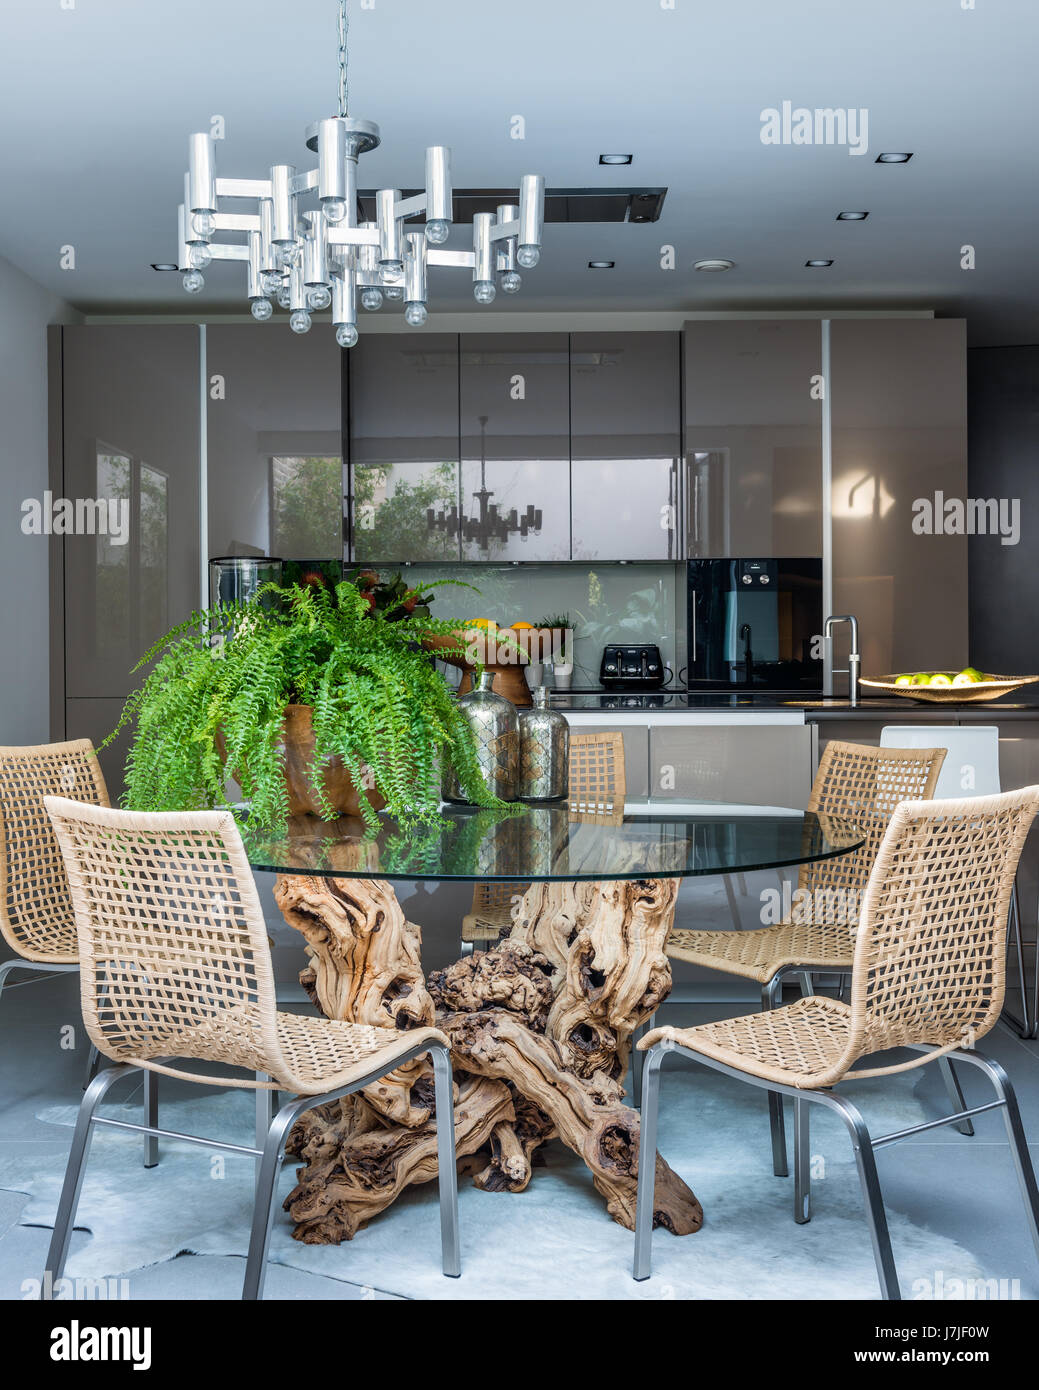 Tree root dining table by Hugh McLaughlin in kitchen with Ikea dining chairs and bar stools and high gloss units Stock Photo